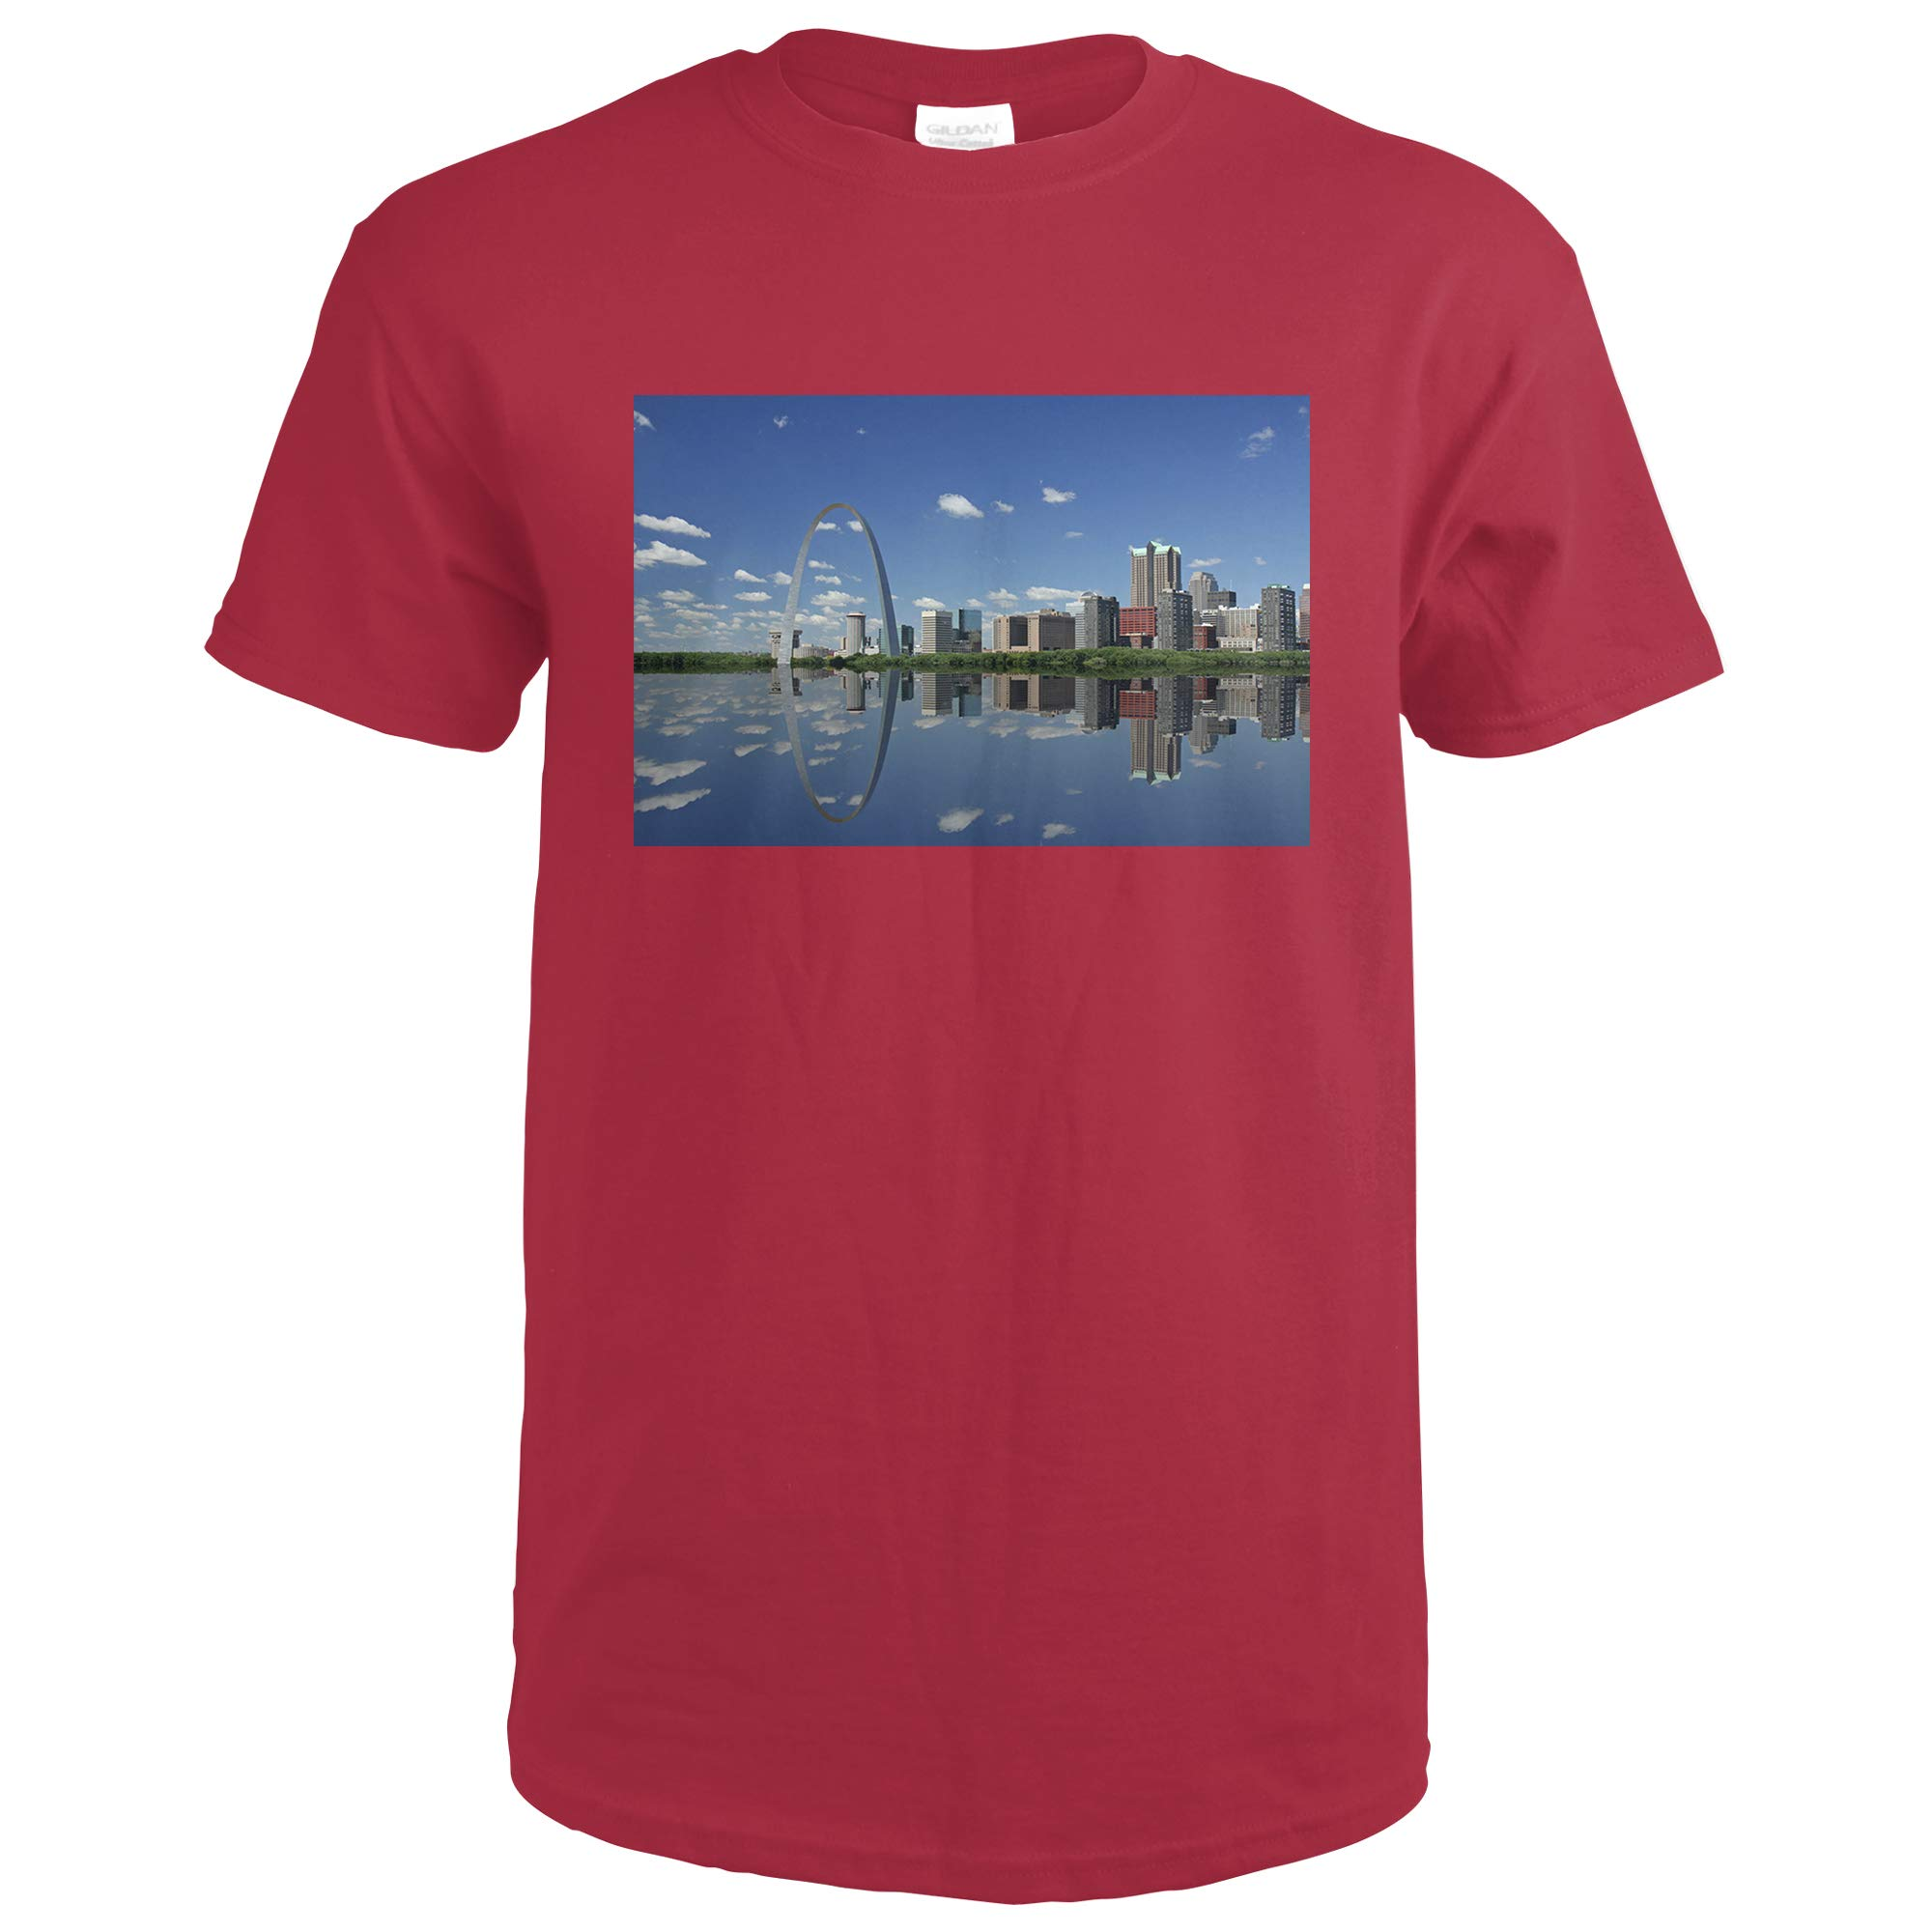 St Louis,  Missouri Gateway Arch And Reflection Photography A 93063 93063 Cardinal Red Xx Large Shirts